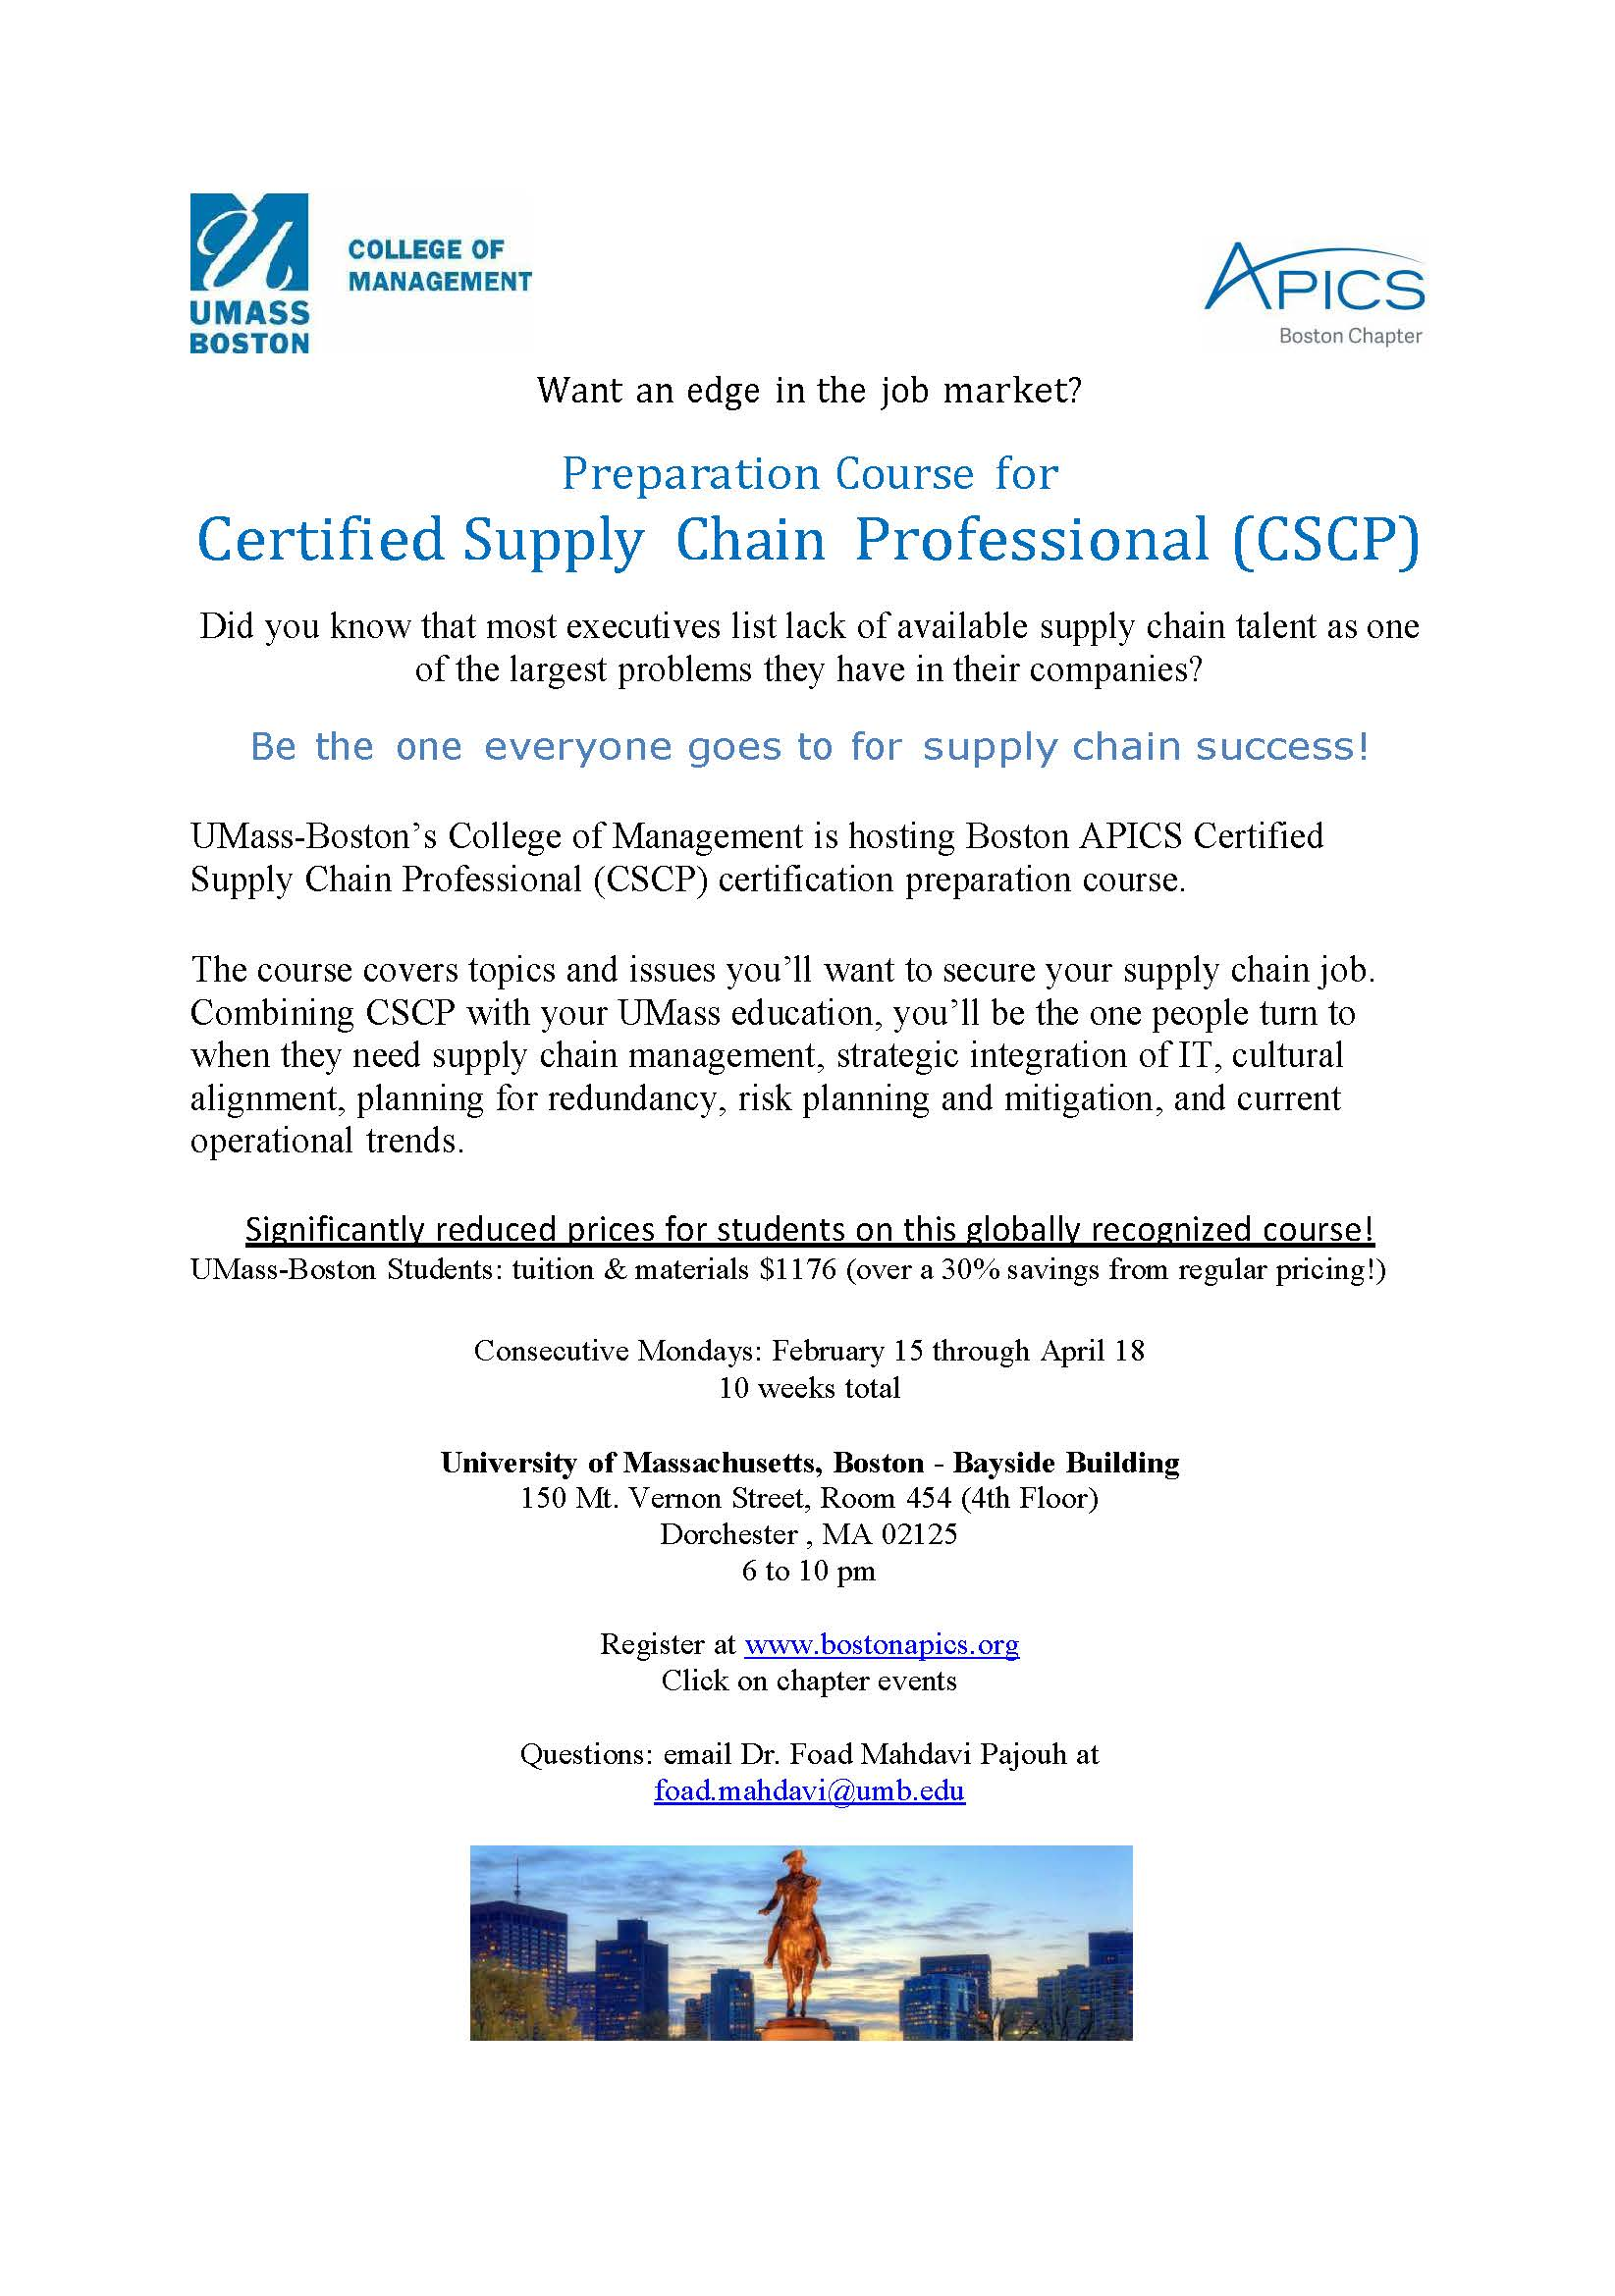 Preparation course for certified supply chain professional cscp 16 02 08 cscp umass xflitez Choice Image